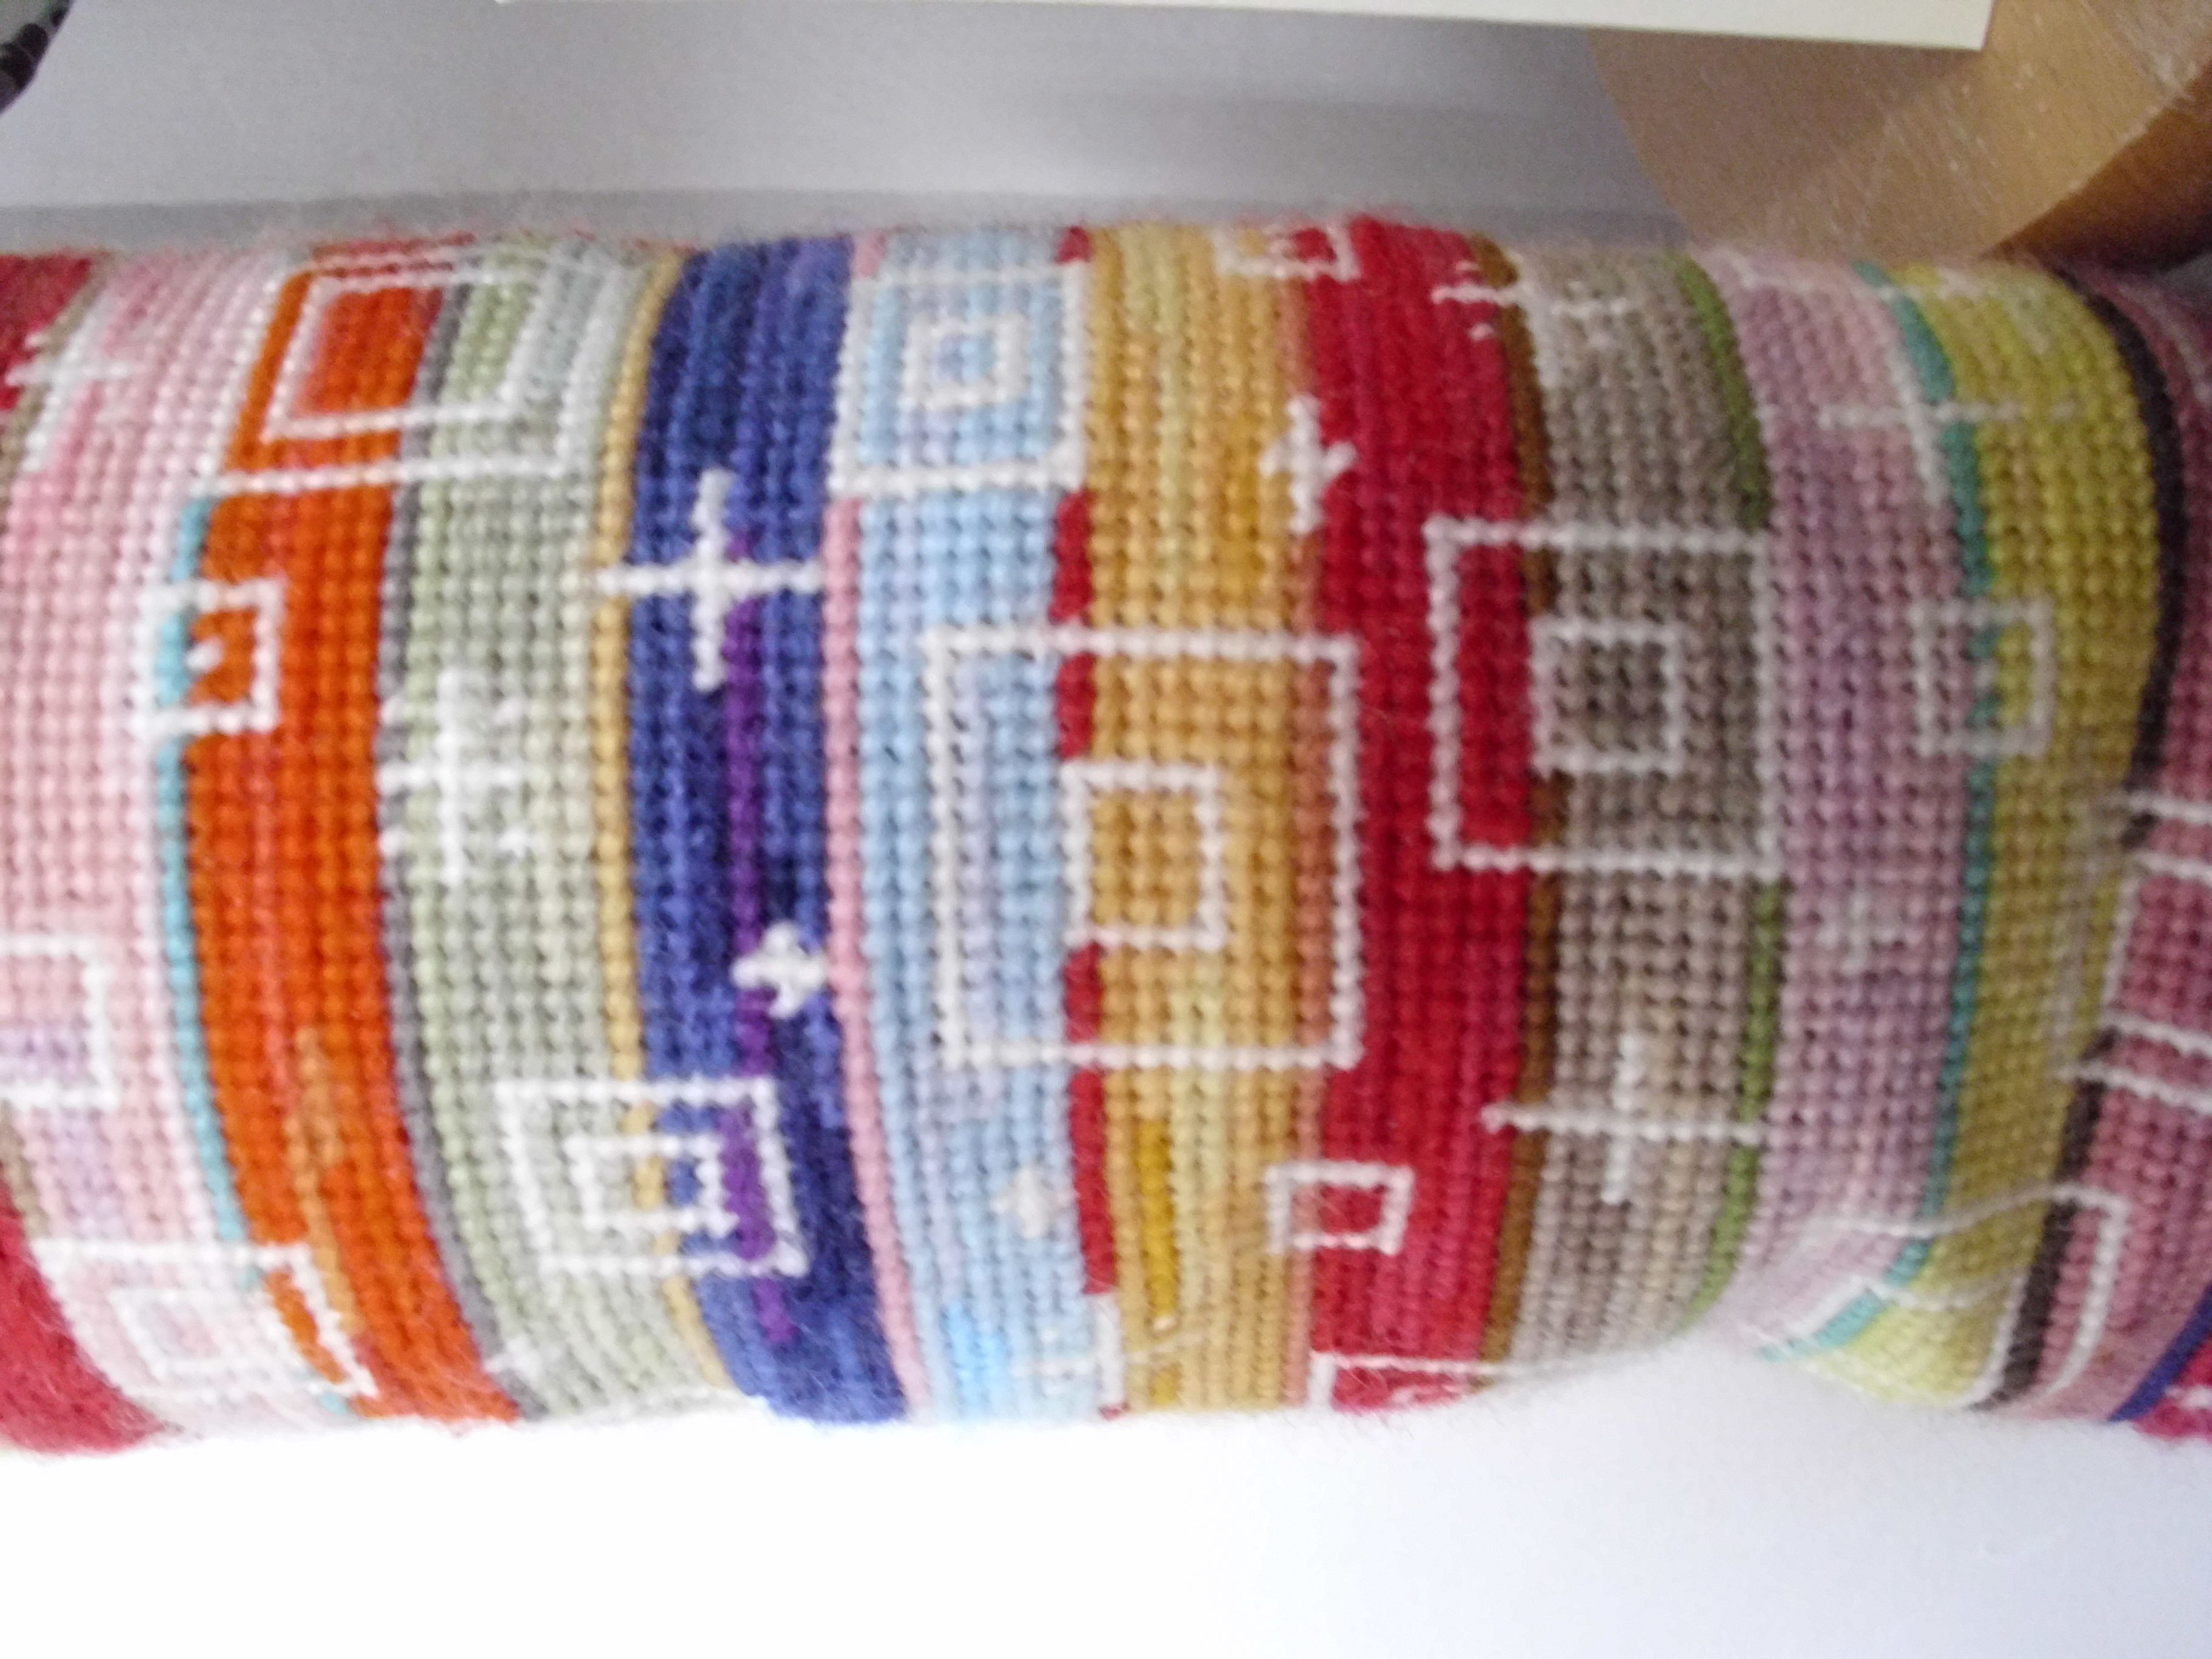 A close-up of a draught excluder, showing how effective the humble stripe can be.